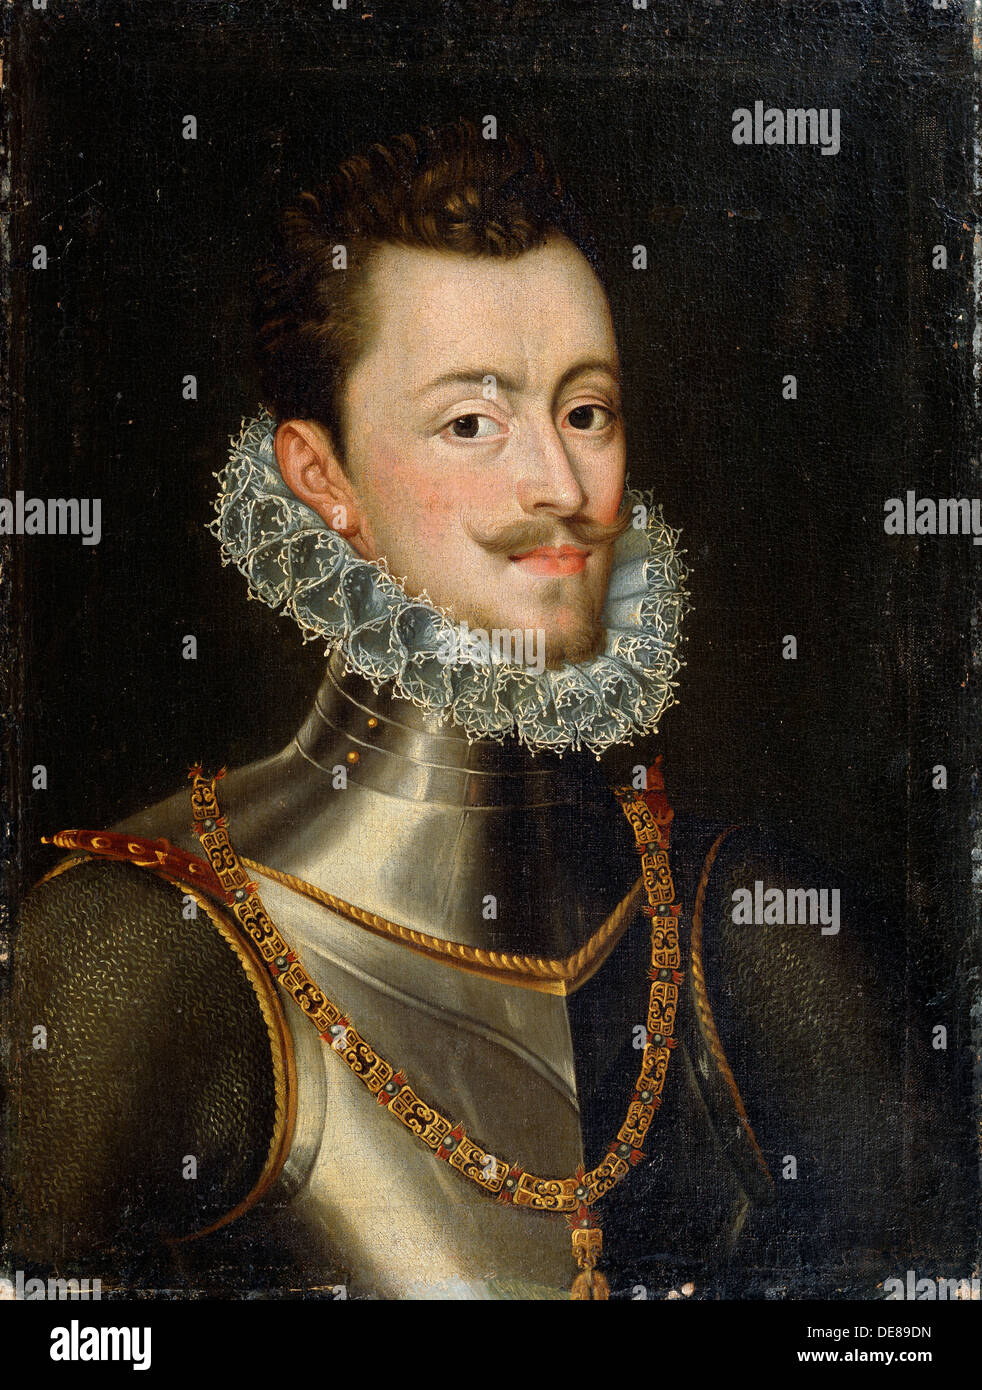 'Portrait of the Governor of the Habsburg Netherlands Don John of Austria', 16th century.  Artist: Alonso Sanchez Coello - Stock Image